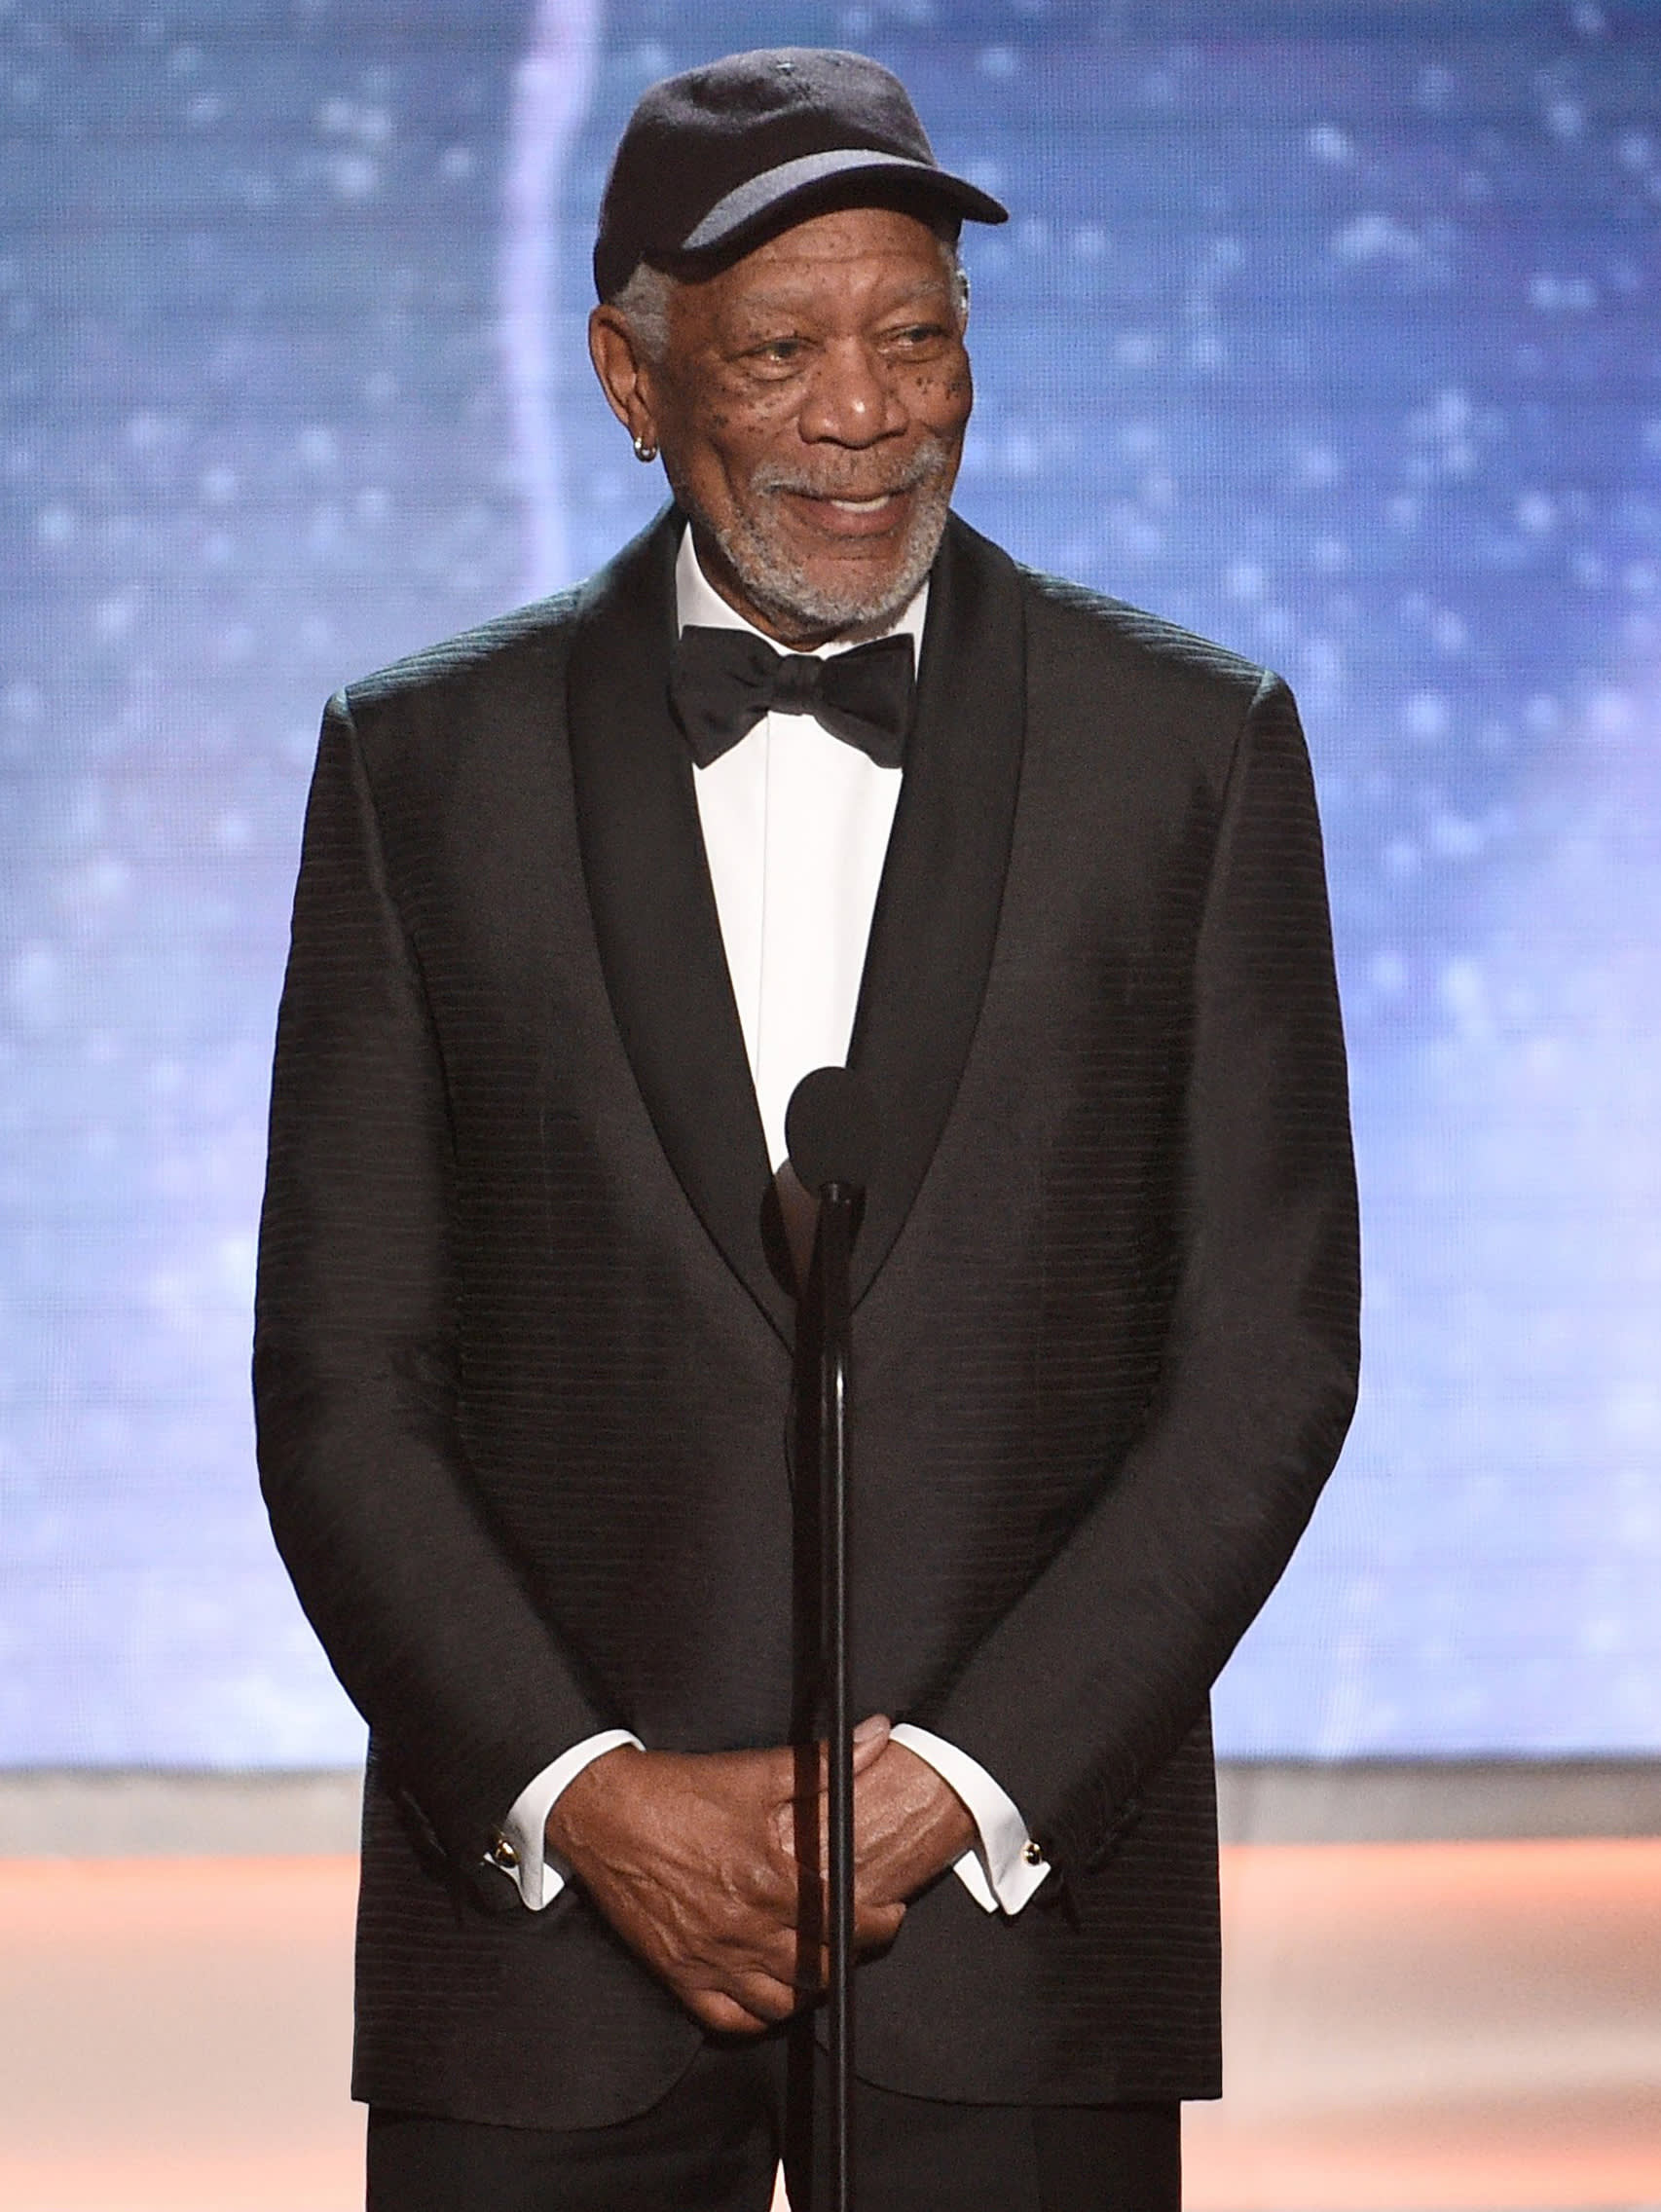 Morgan Freeman wearing a Brioni bespoke black tuxedo